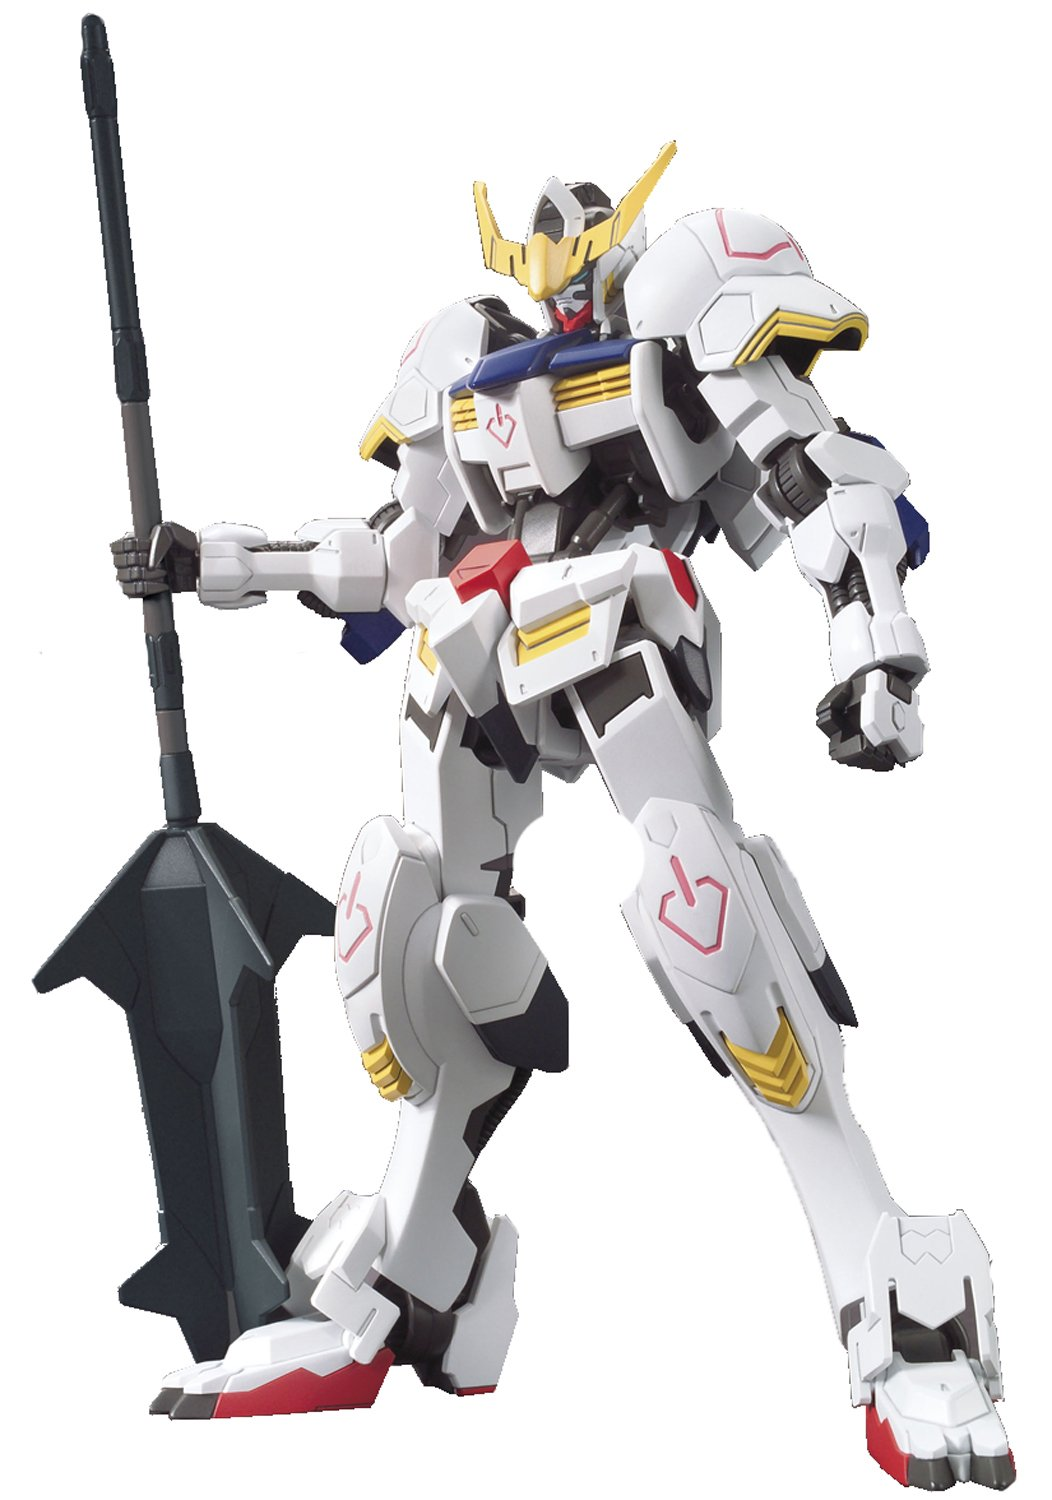 Bandai Hobby HG Orphans Gundam Barbatos Gundam Iron-Blooded Orphans Action Figure